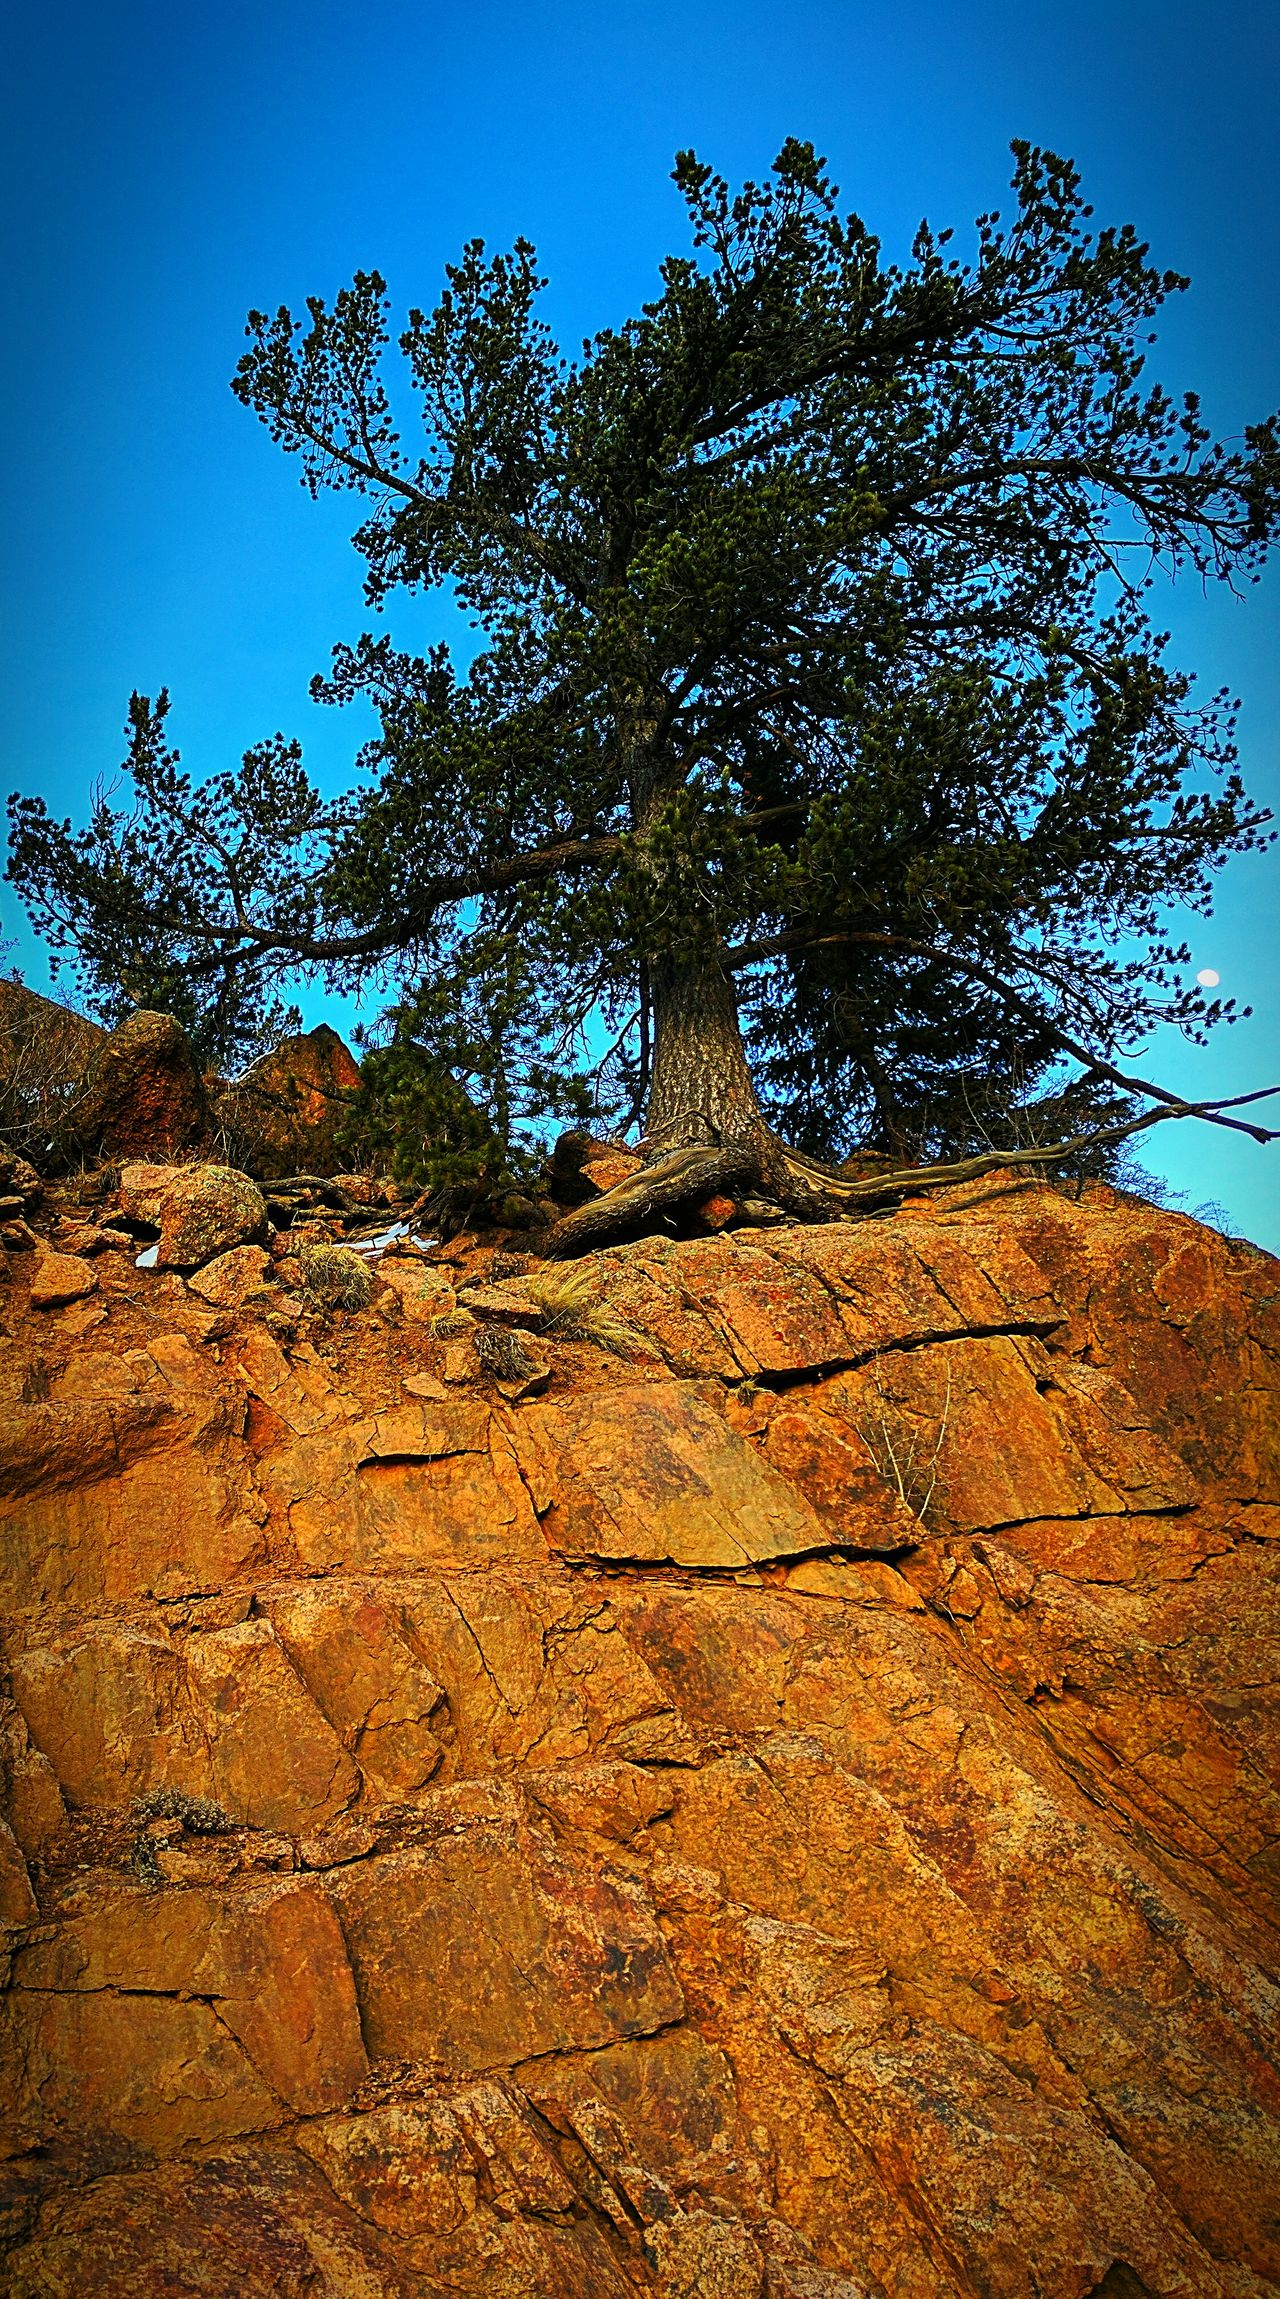 No People Nature Tree Outdoors Sky Backgrounds Beauty In Nature Red Rocks  Treelovers Tree Roots  Moonporn Lookingup Myview Backroads High Altitude Colorado Naturelover Google Pixel Aviary_edit